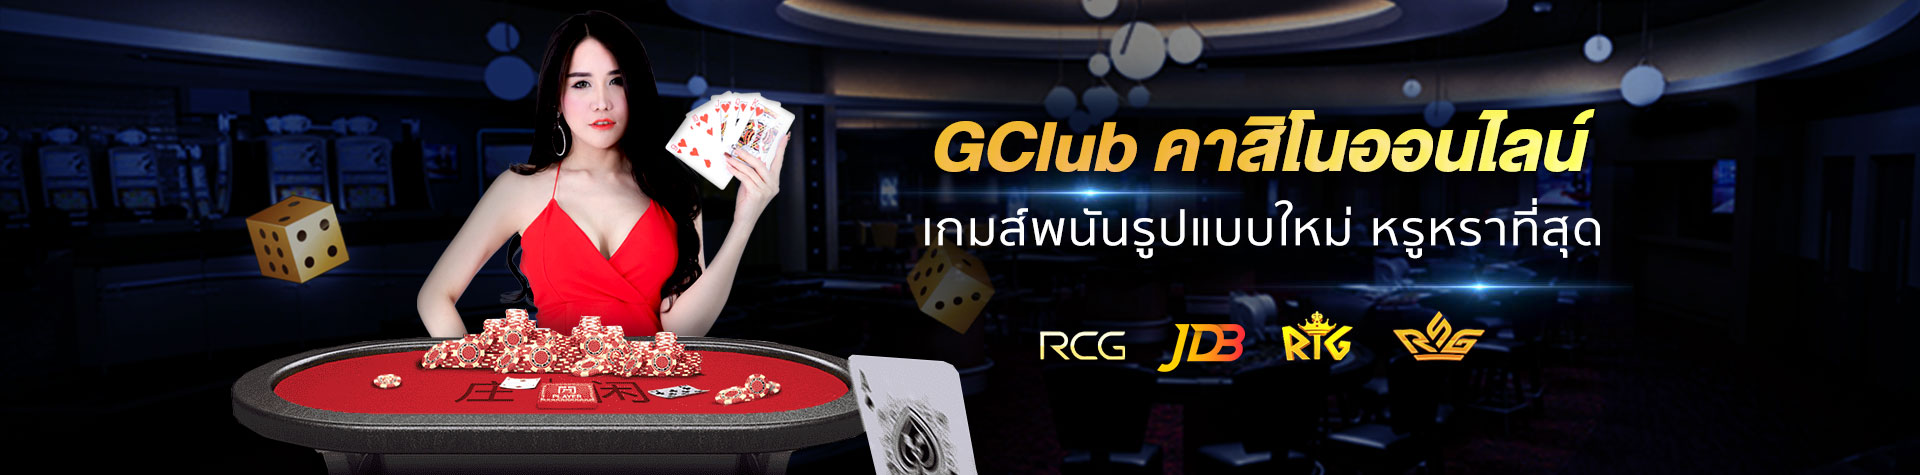 royal777 gclub